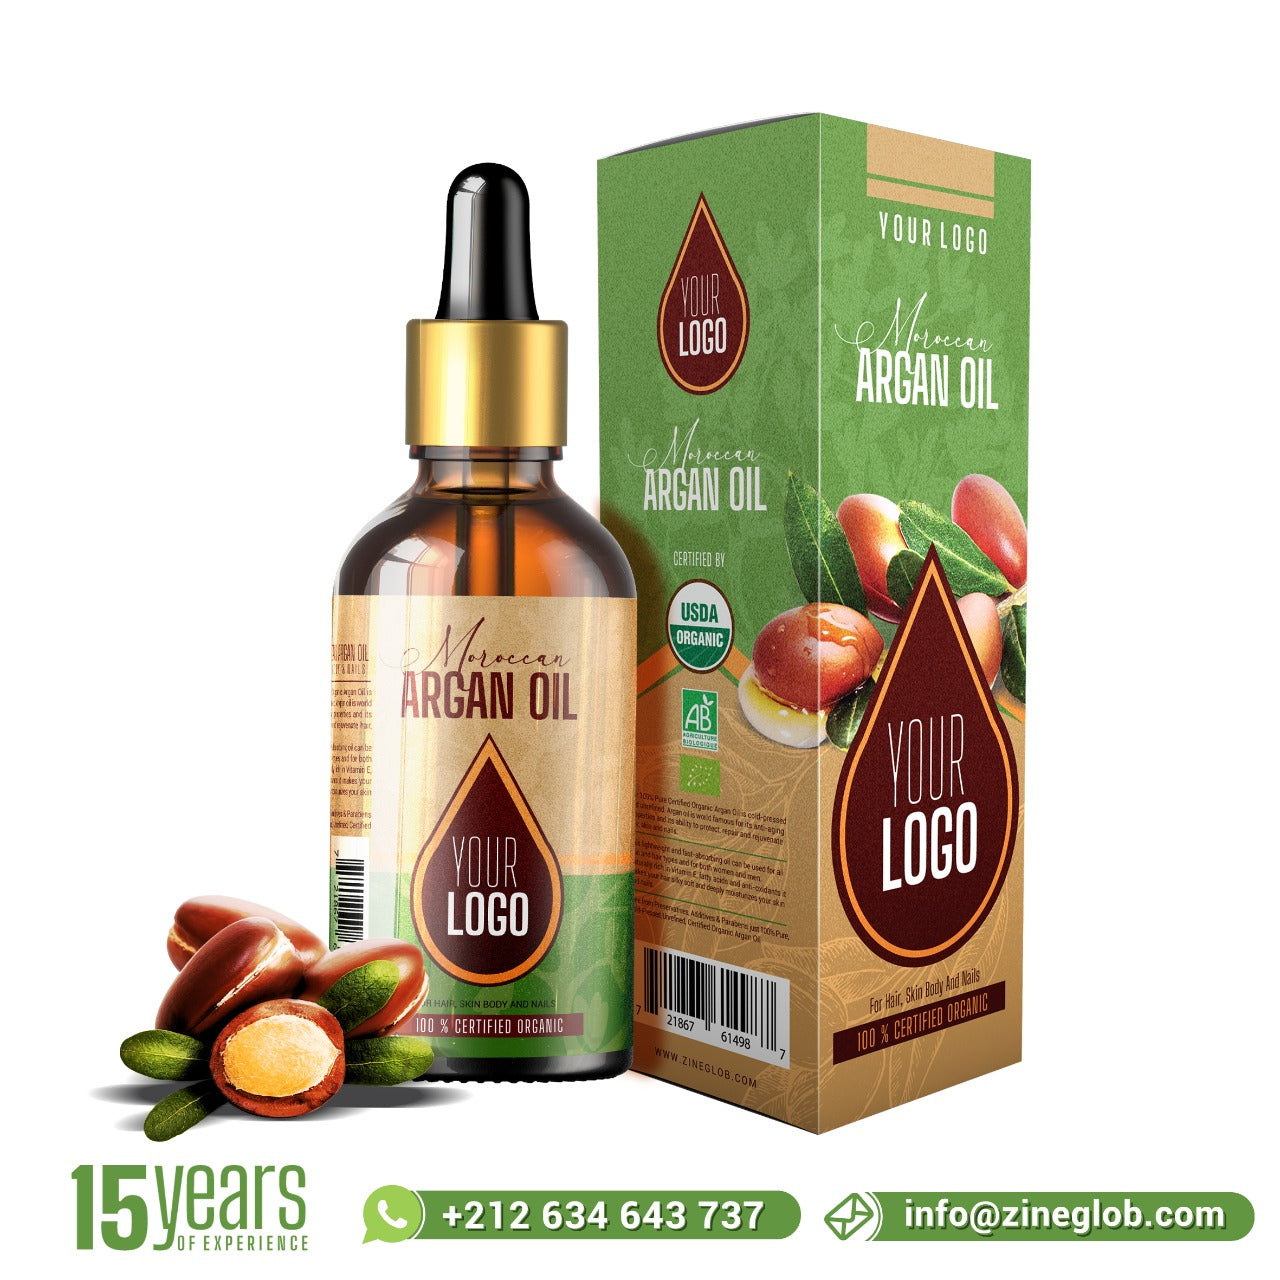 FOUR STEPS TO CREATING YOUR OWN BRAND ARGAN OIL